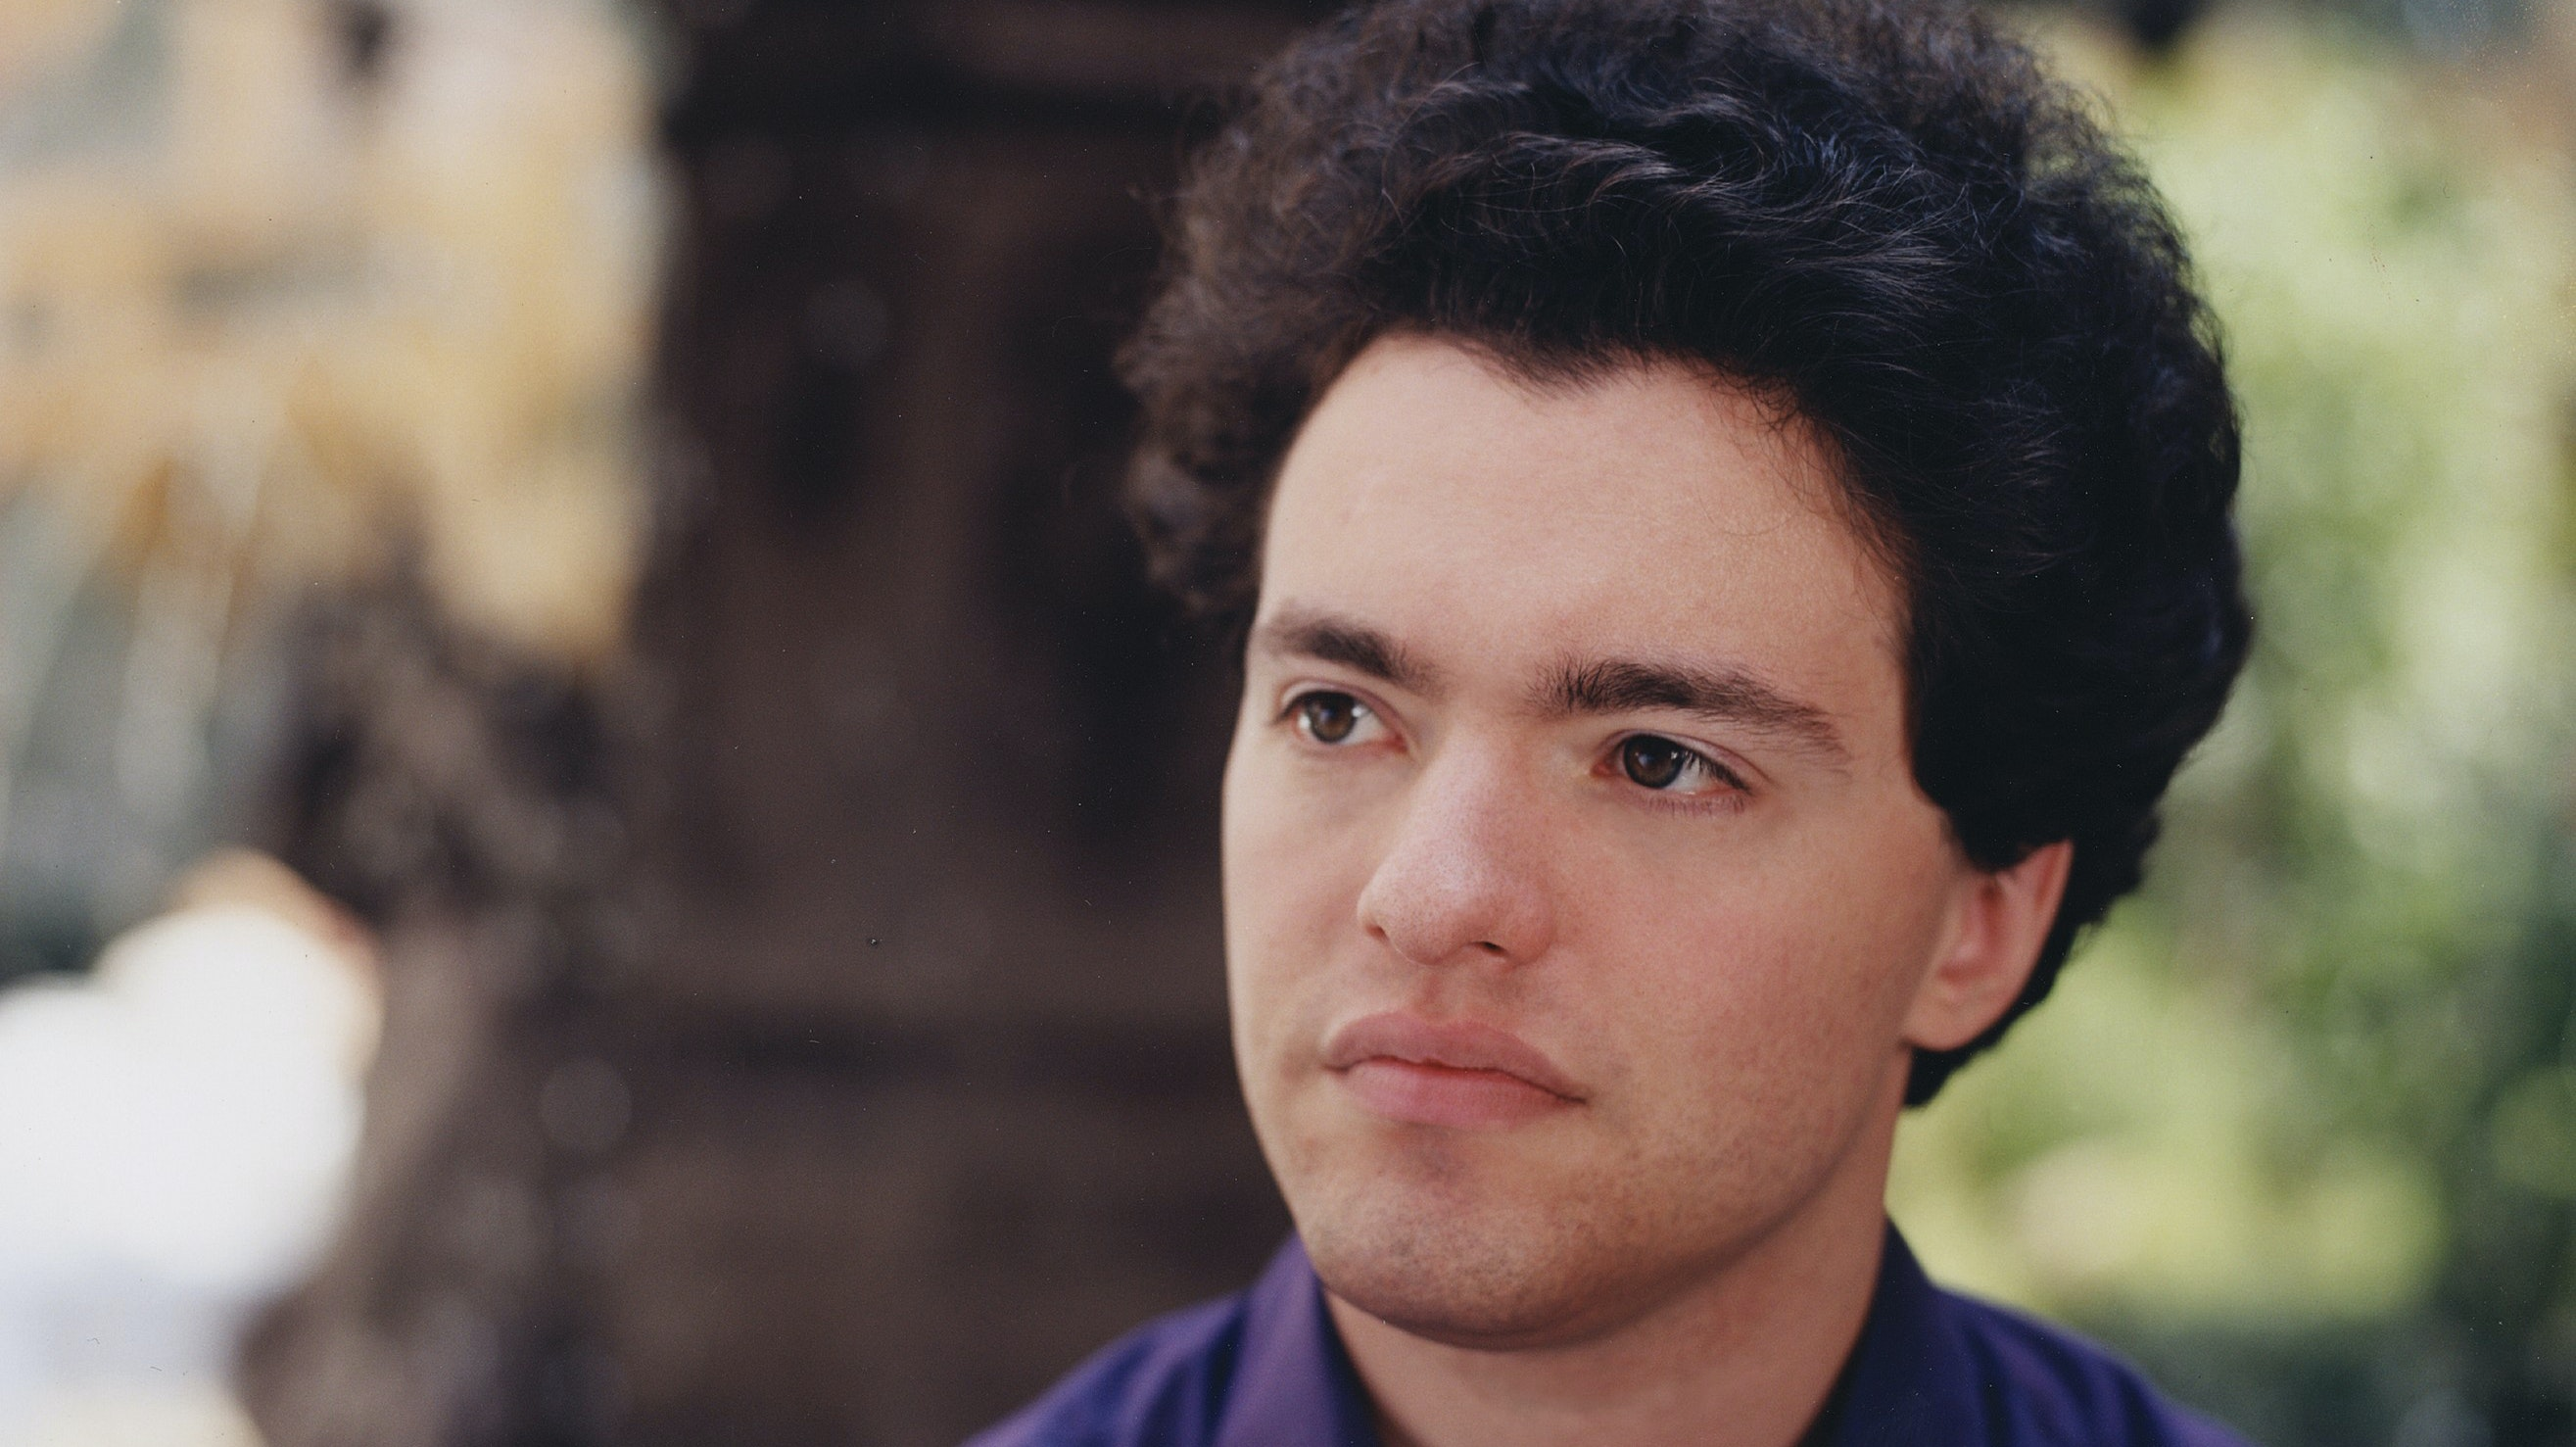 Thomas Hengelbrock conducts Berlioz, Liszt, Rossini, Mendelssohn, and Verdi – With Evgeny Kissin